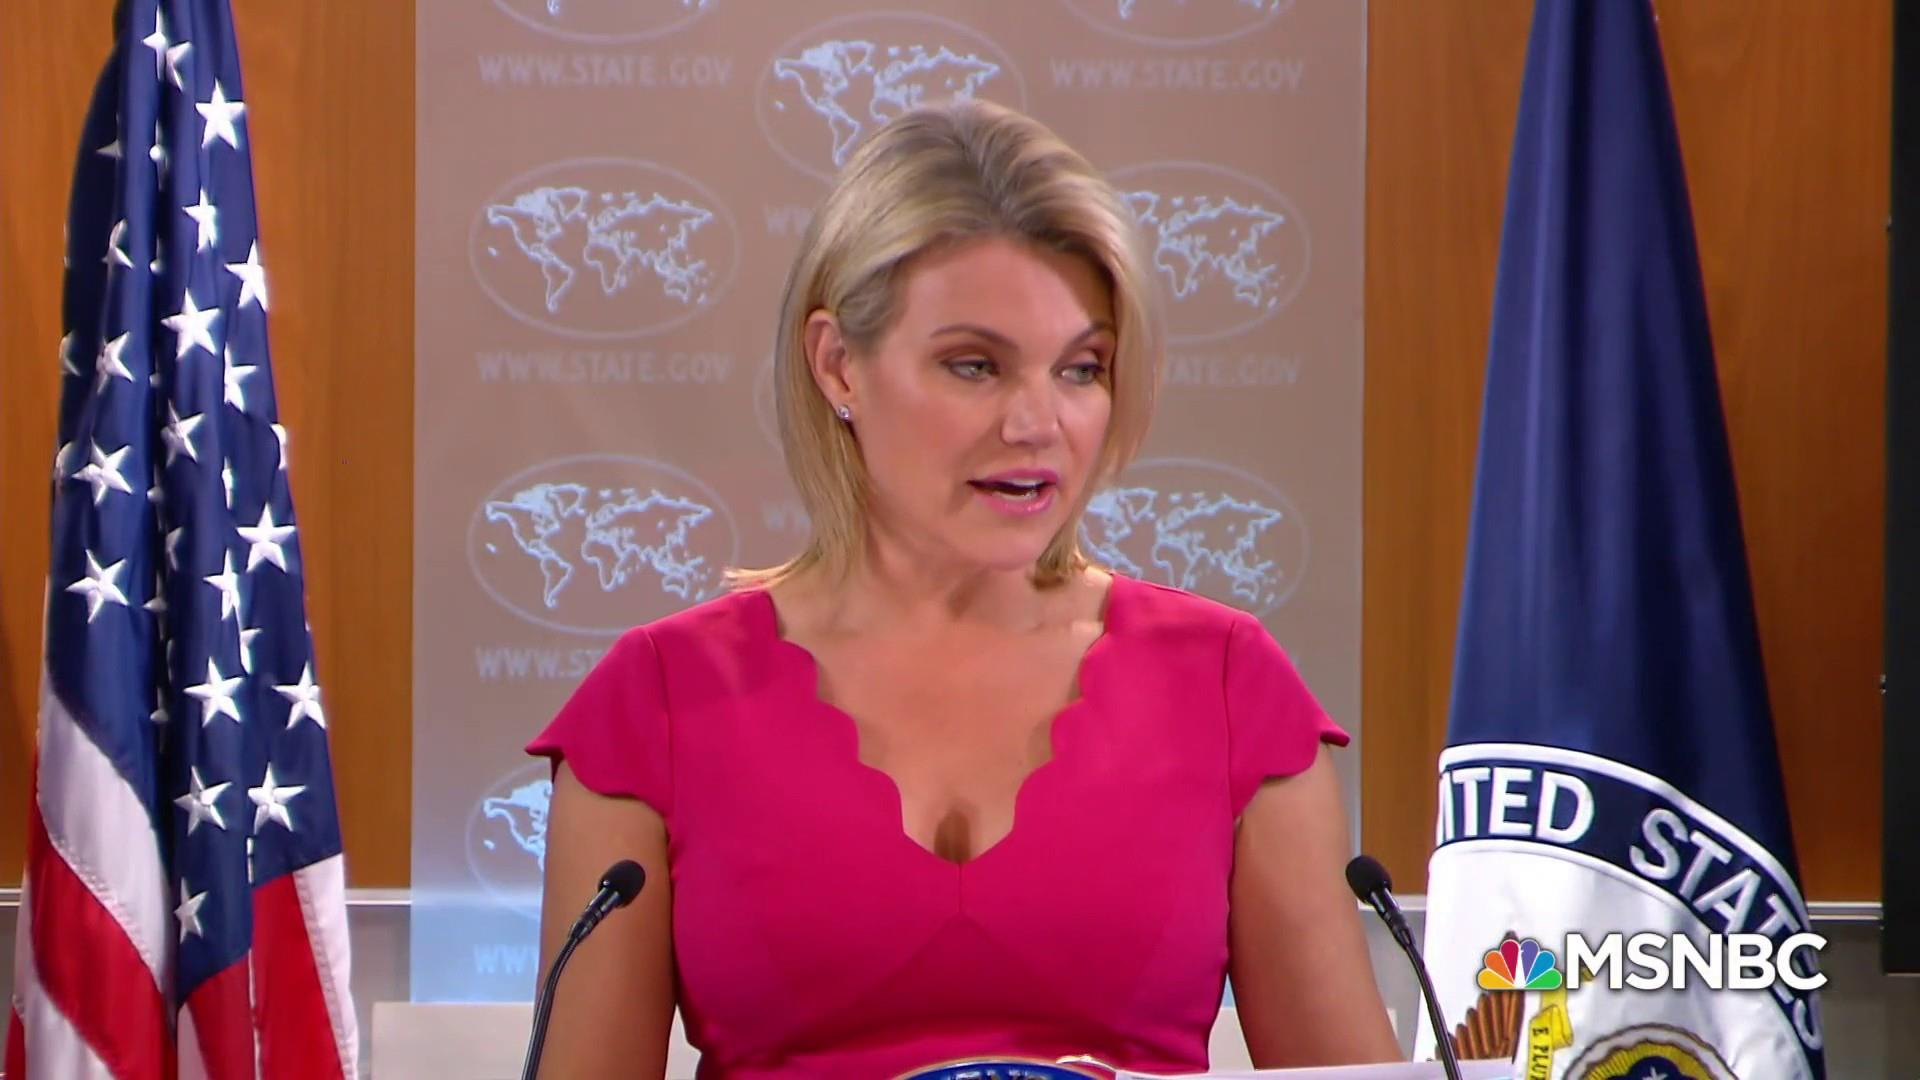 David Corn: I don't see Heather Nauert as having foundation you want in a U.N. ambassador